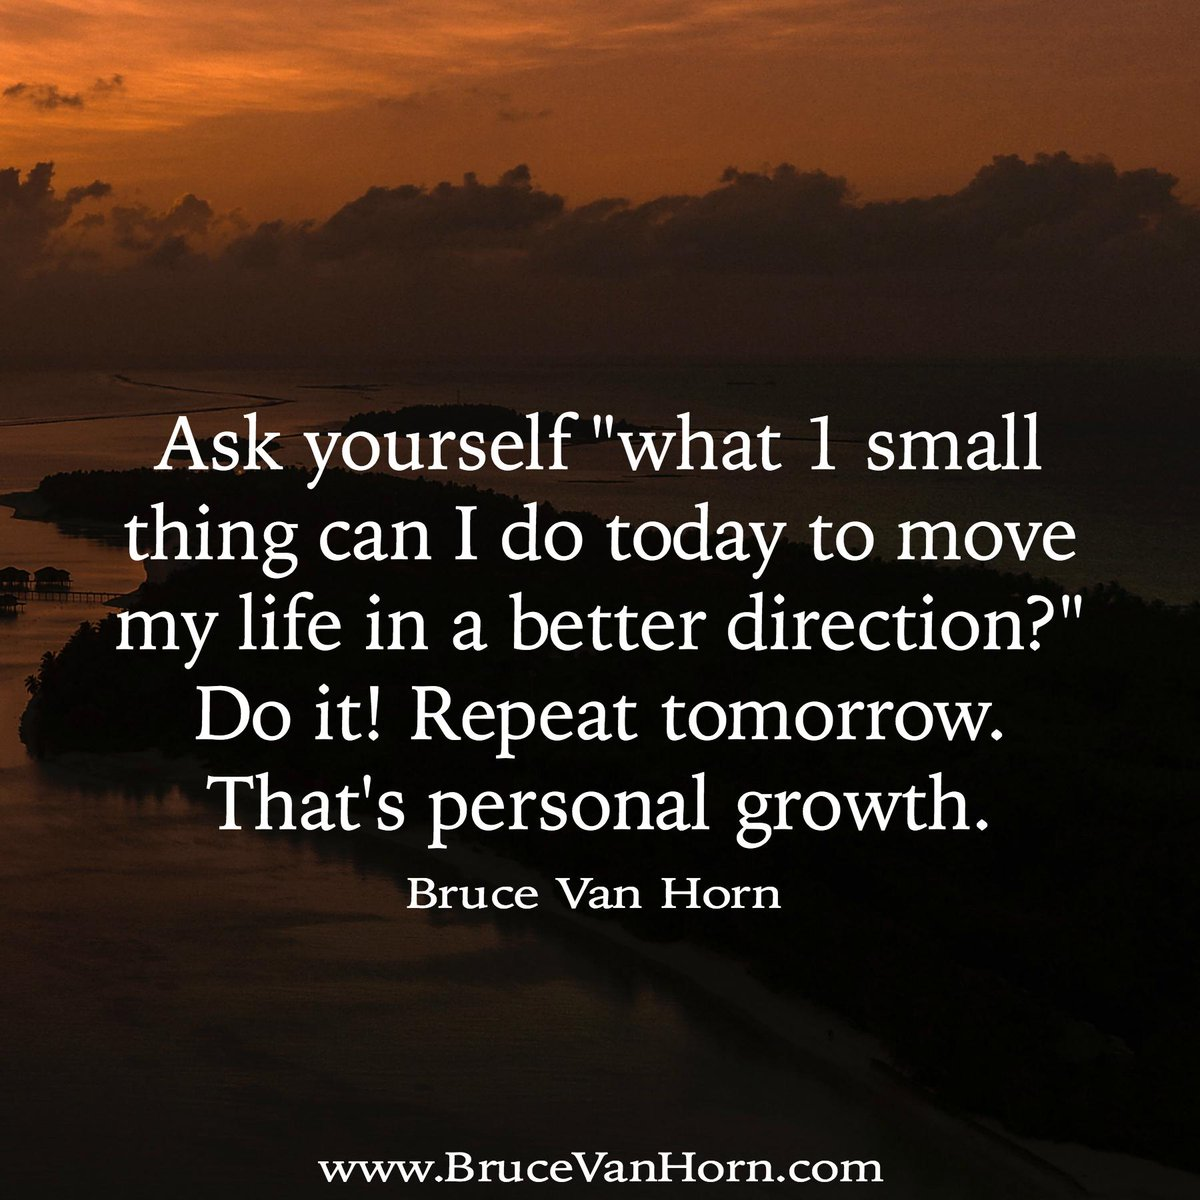 """Ask yourself """"what 1 small thing can I do today to move my life in a better direction?"""" Do it! Repeat tomorrow. That's #PersonalGrowth <br>http://pic.twitter.com/68TkulrRT9"""